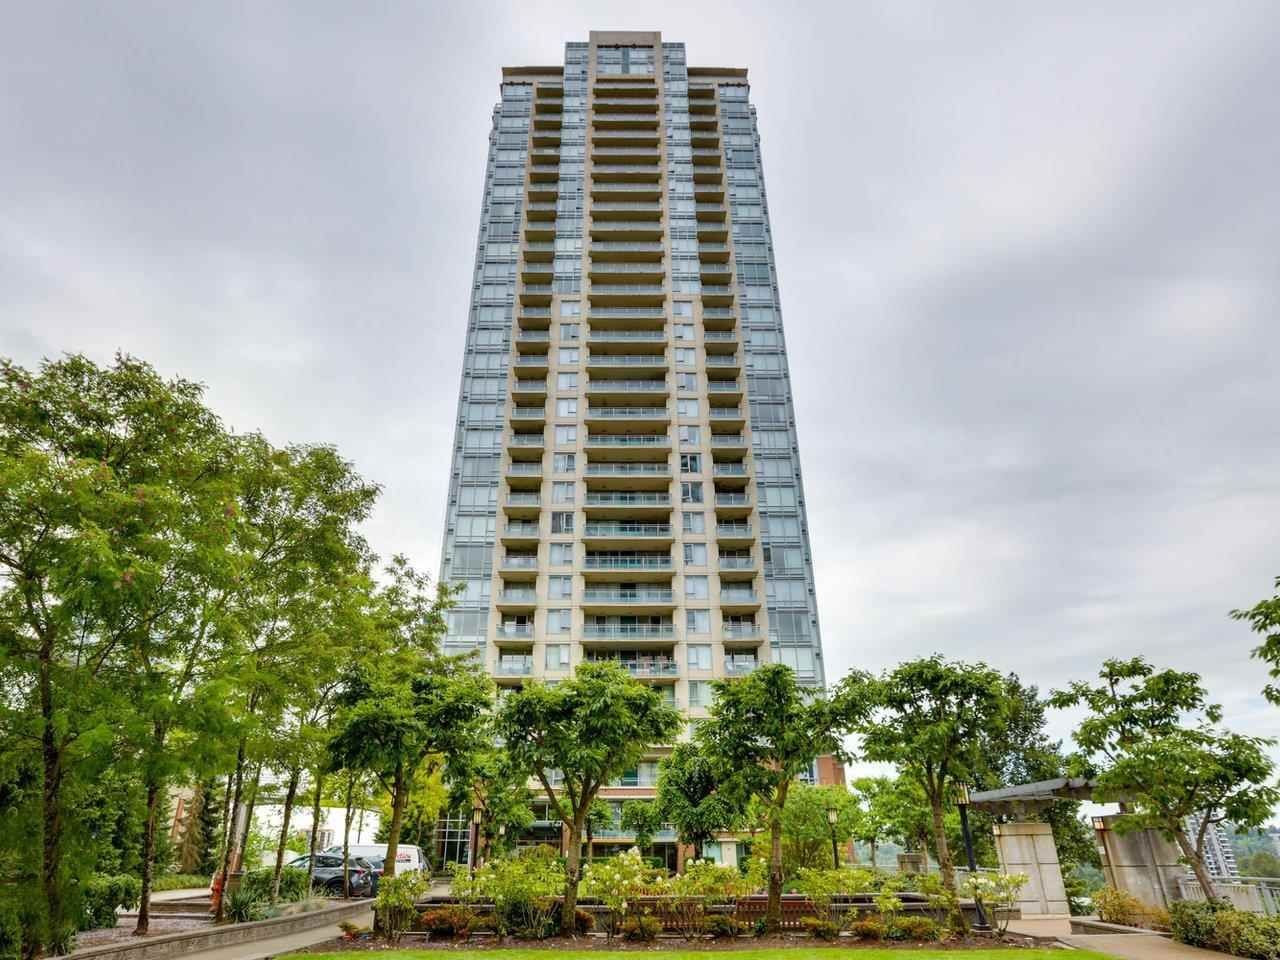 """Main Photo: 2207 9888 CAMERON Street in Burnaby: Sullivan Heights Condo for sale in """"Silhouette"""" (Burnaby North)  : MLS®# R2592912"""